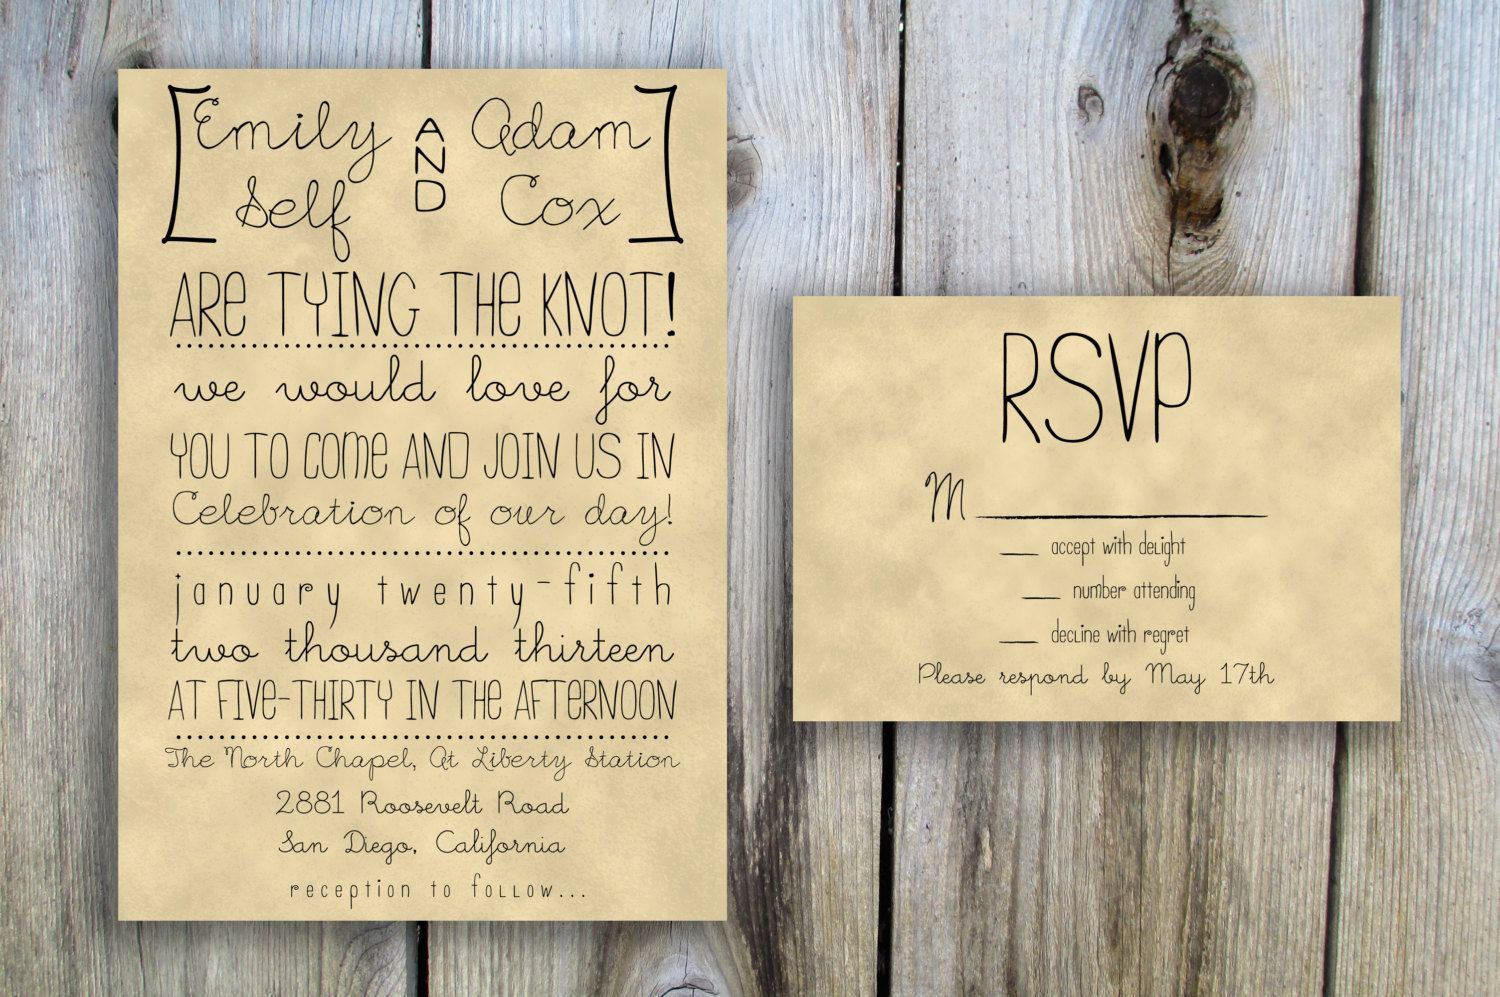 rustic vintage wedding invitations diy wedding decoration ideas - Rustic Vintage Wedding Invitations